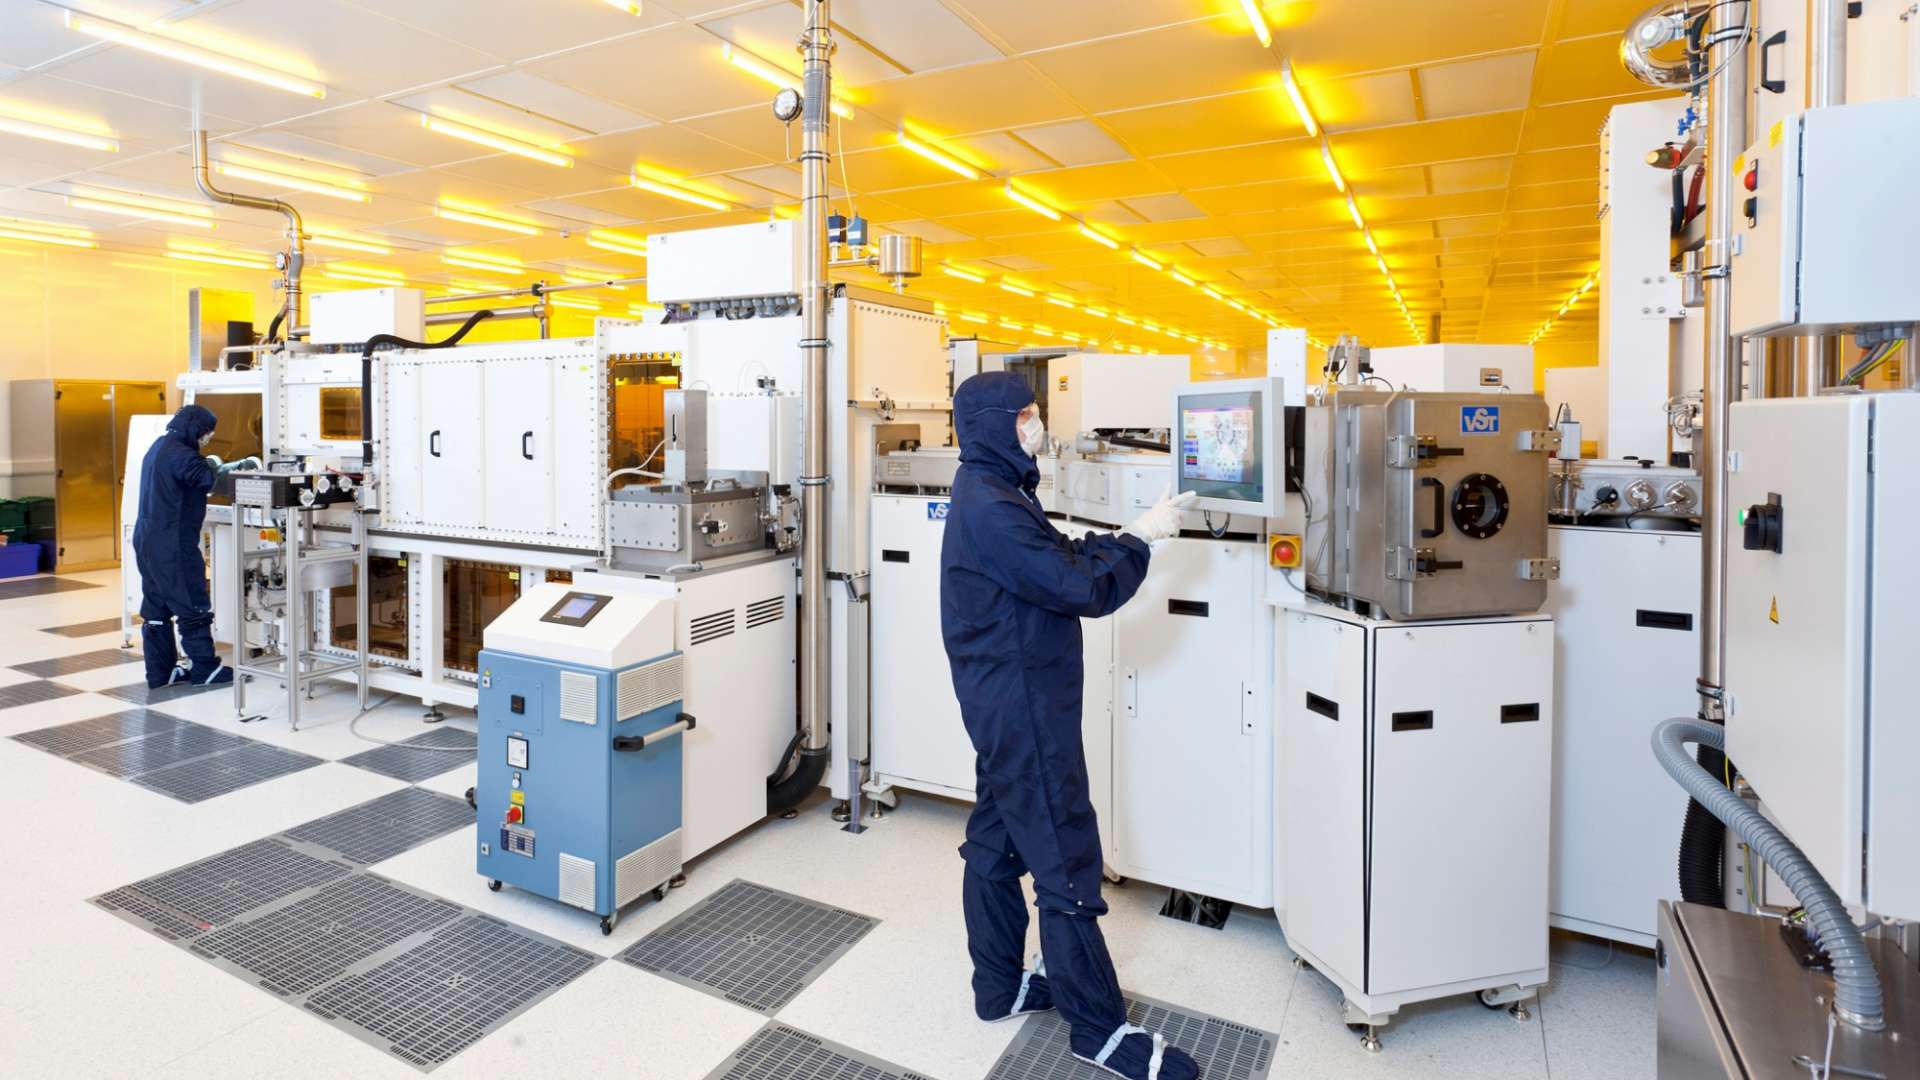 A photo of people working on large equipment in a CPI cleanroom